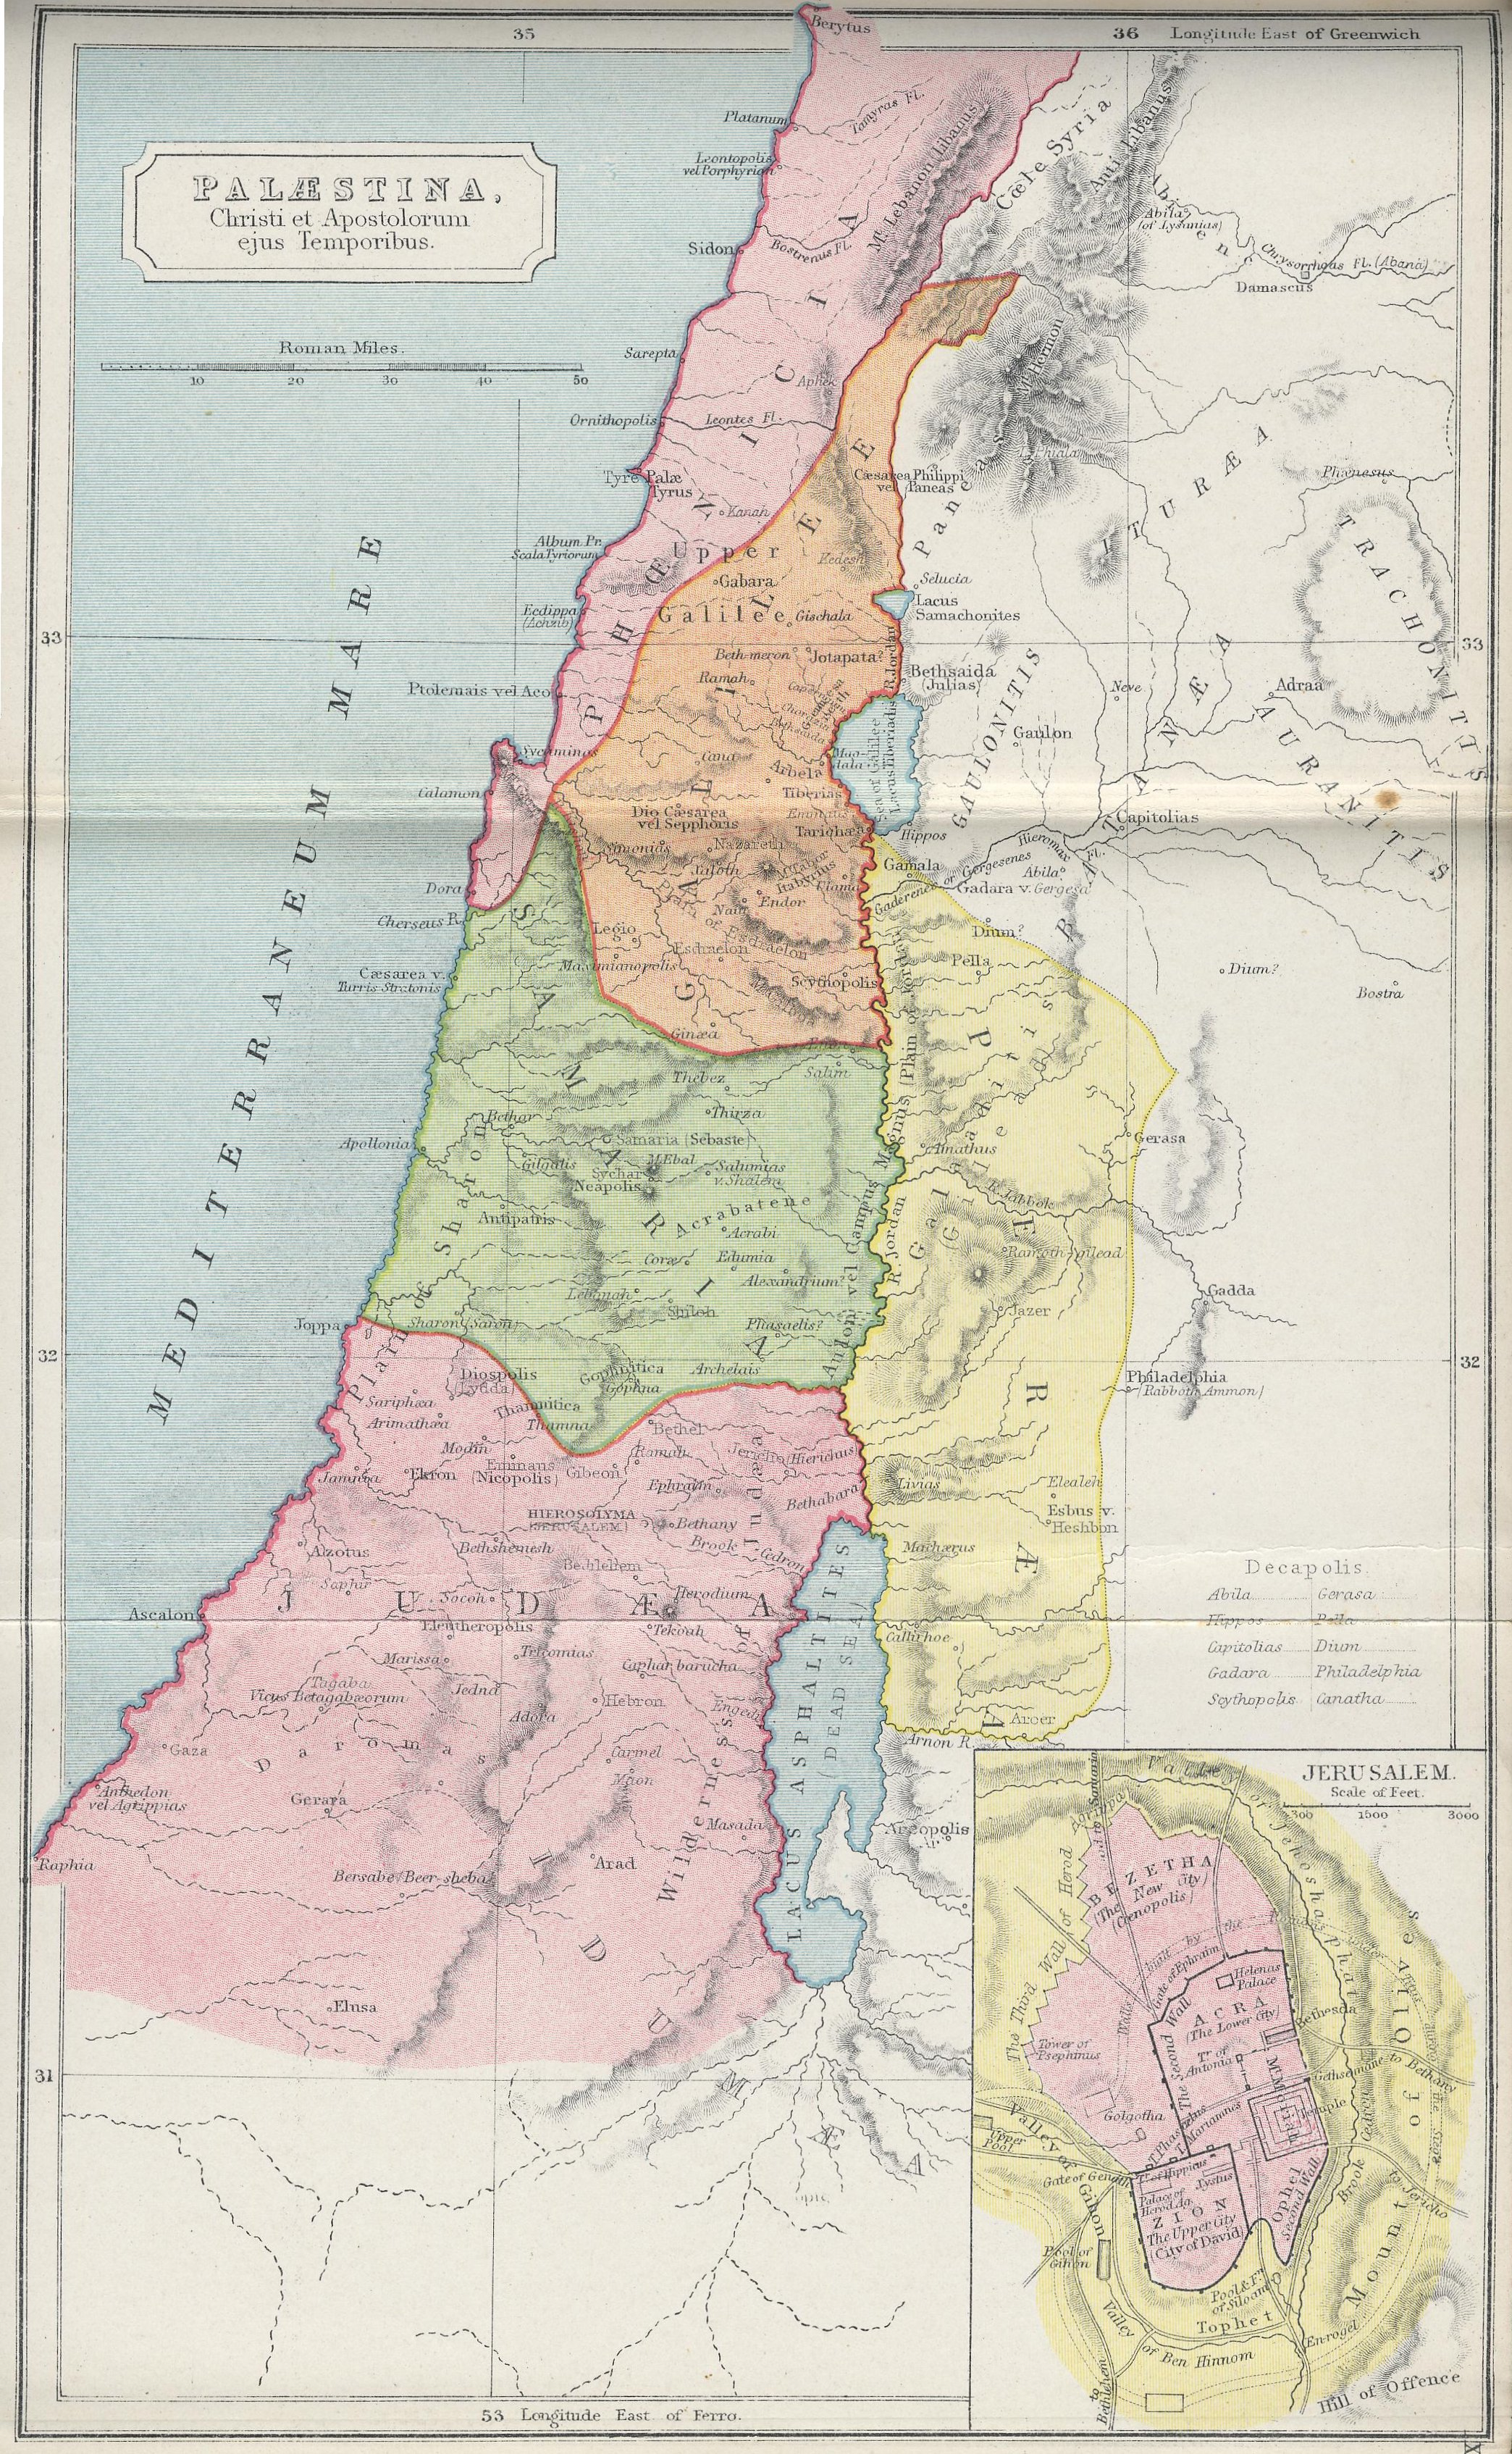 Map of Palestine70 BC - AD 180